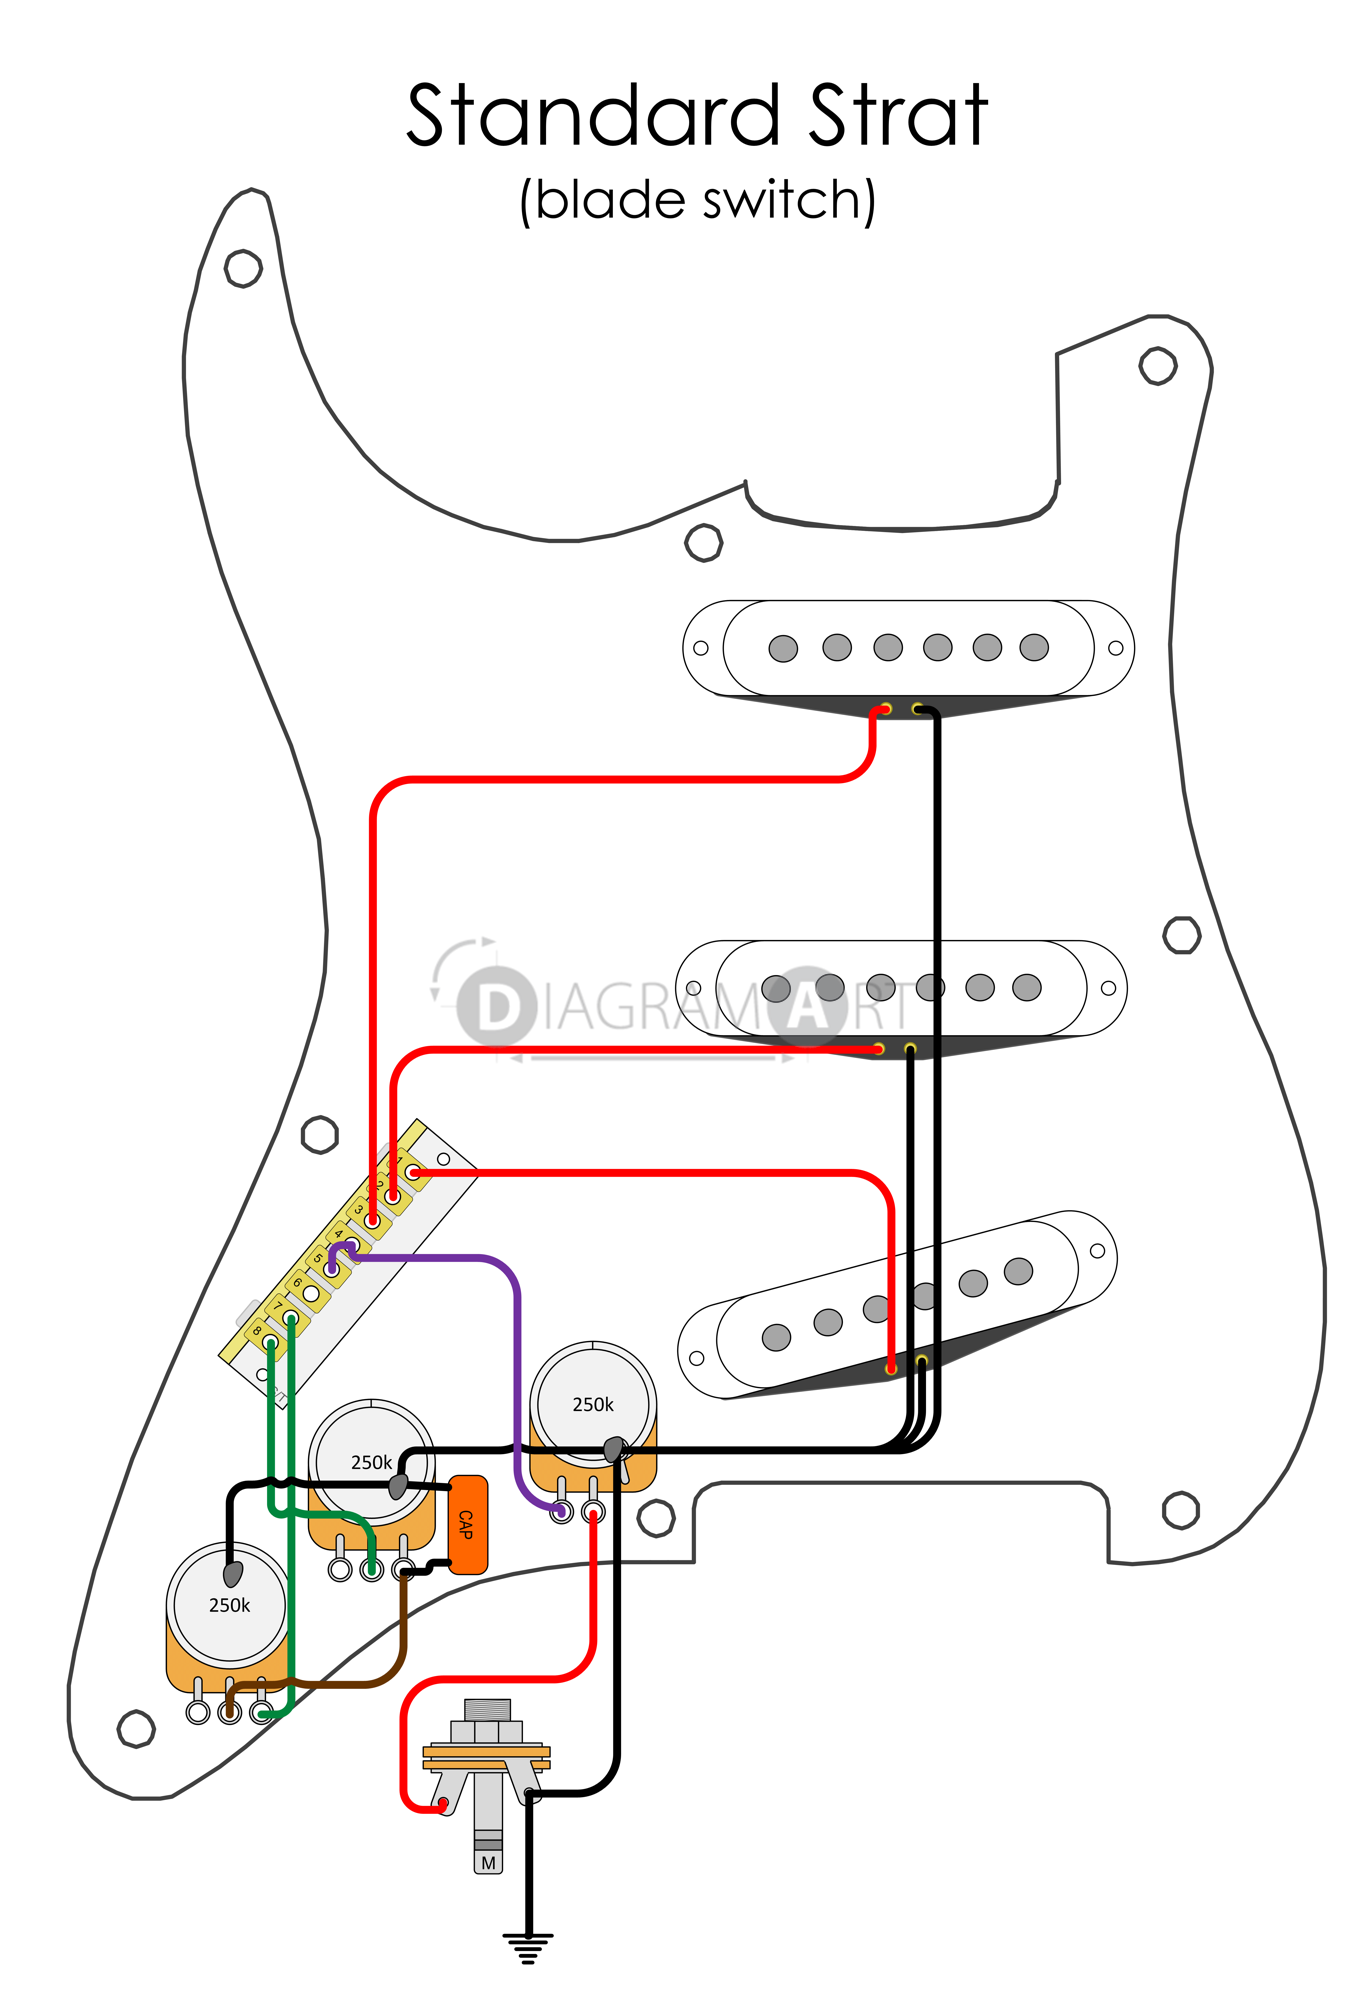 Strange Electric Guitar Wiring Guide Basic Electronics Wiring Diagram Wiring 101 Olytiaxxcnl